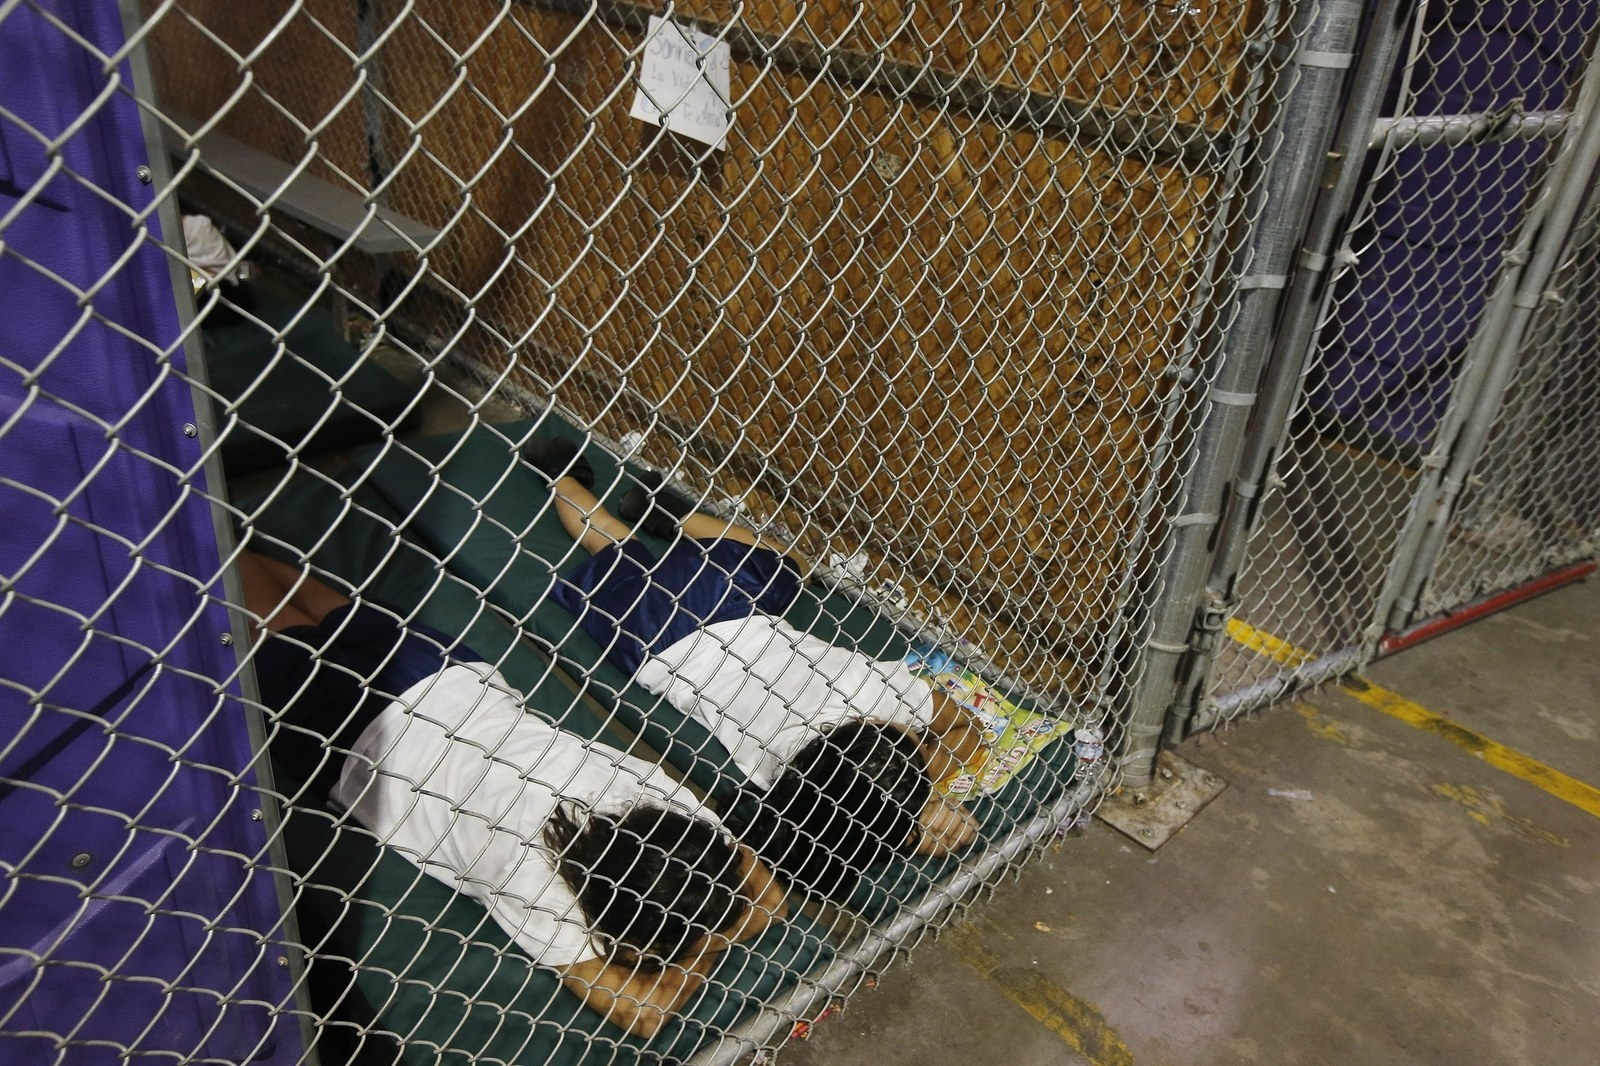 Two female detainees sleep in a holding cell at the US Customs and Border Protection Nogales Placement Center in Nogales, Arizona, in 2014.